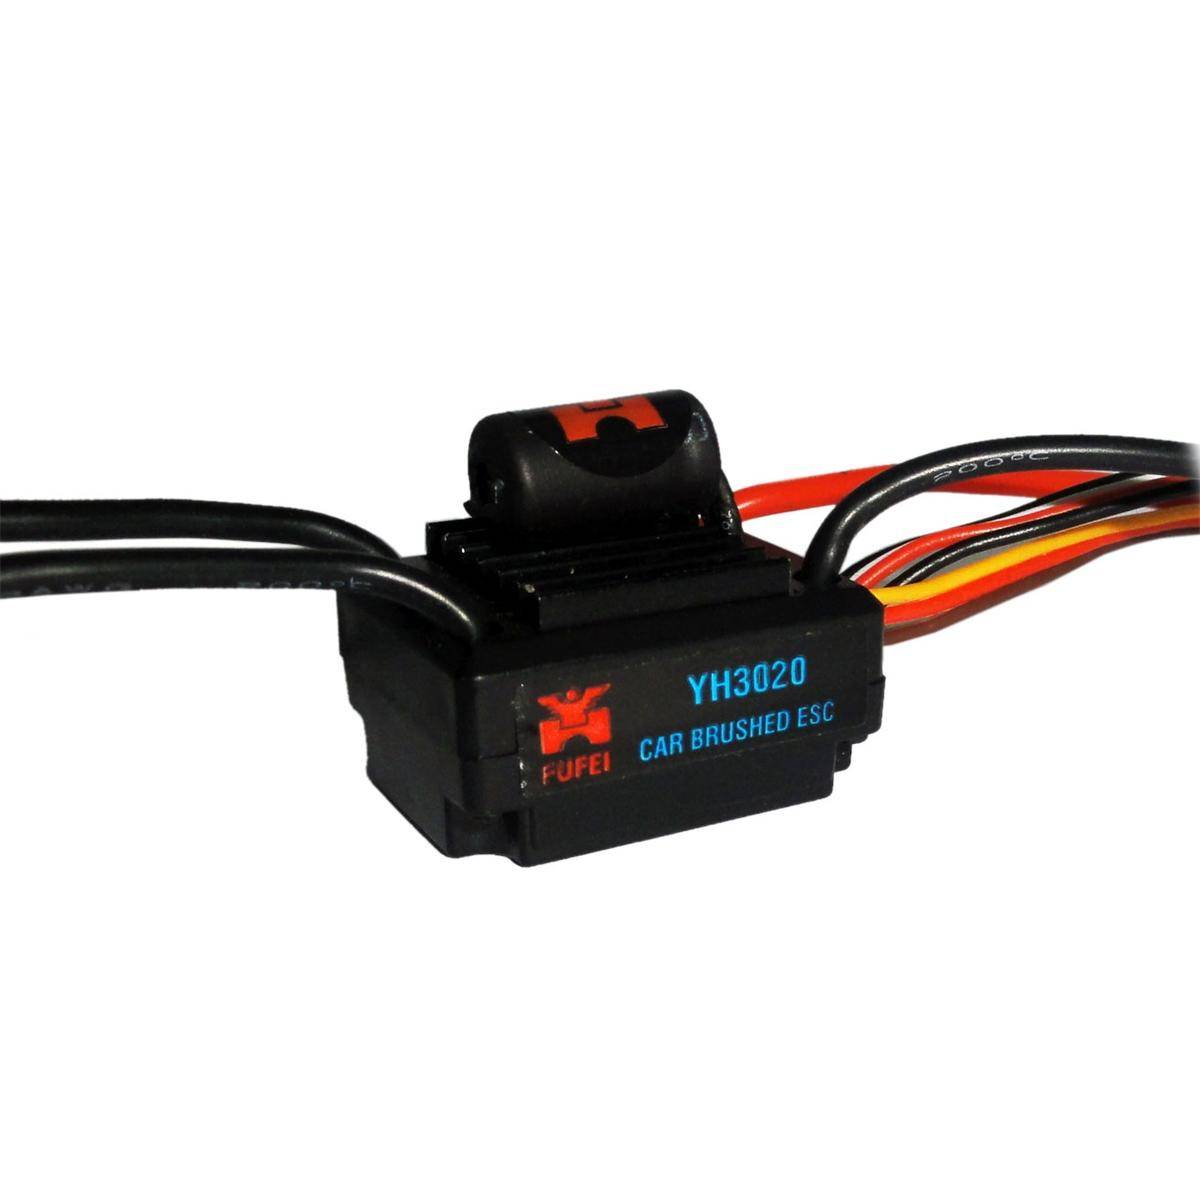 20a brushed esc for rc brushed motor airplane